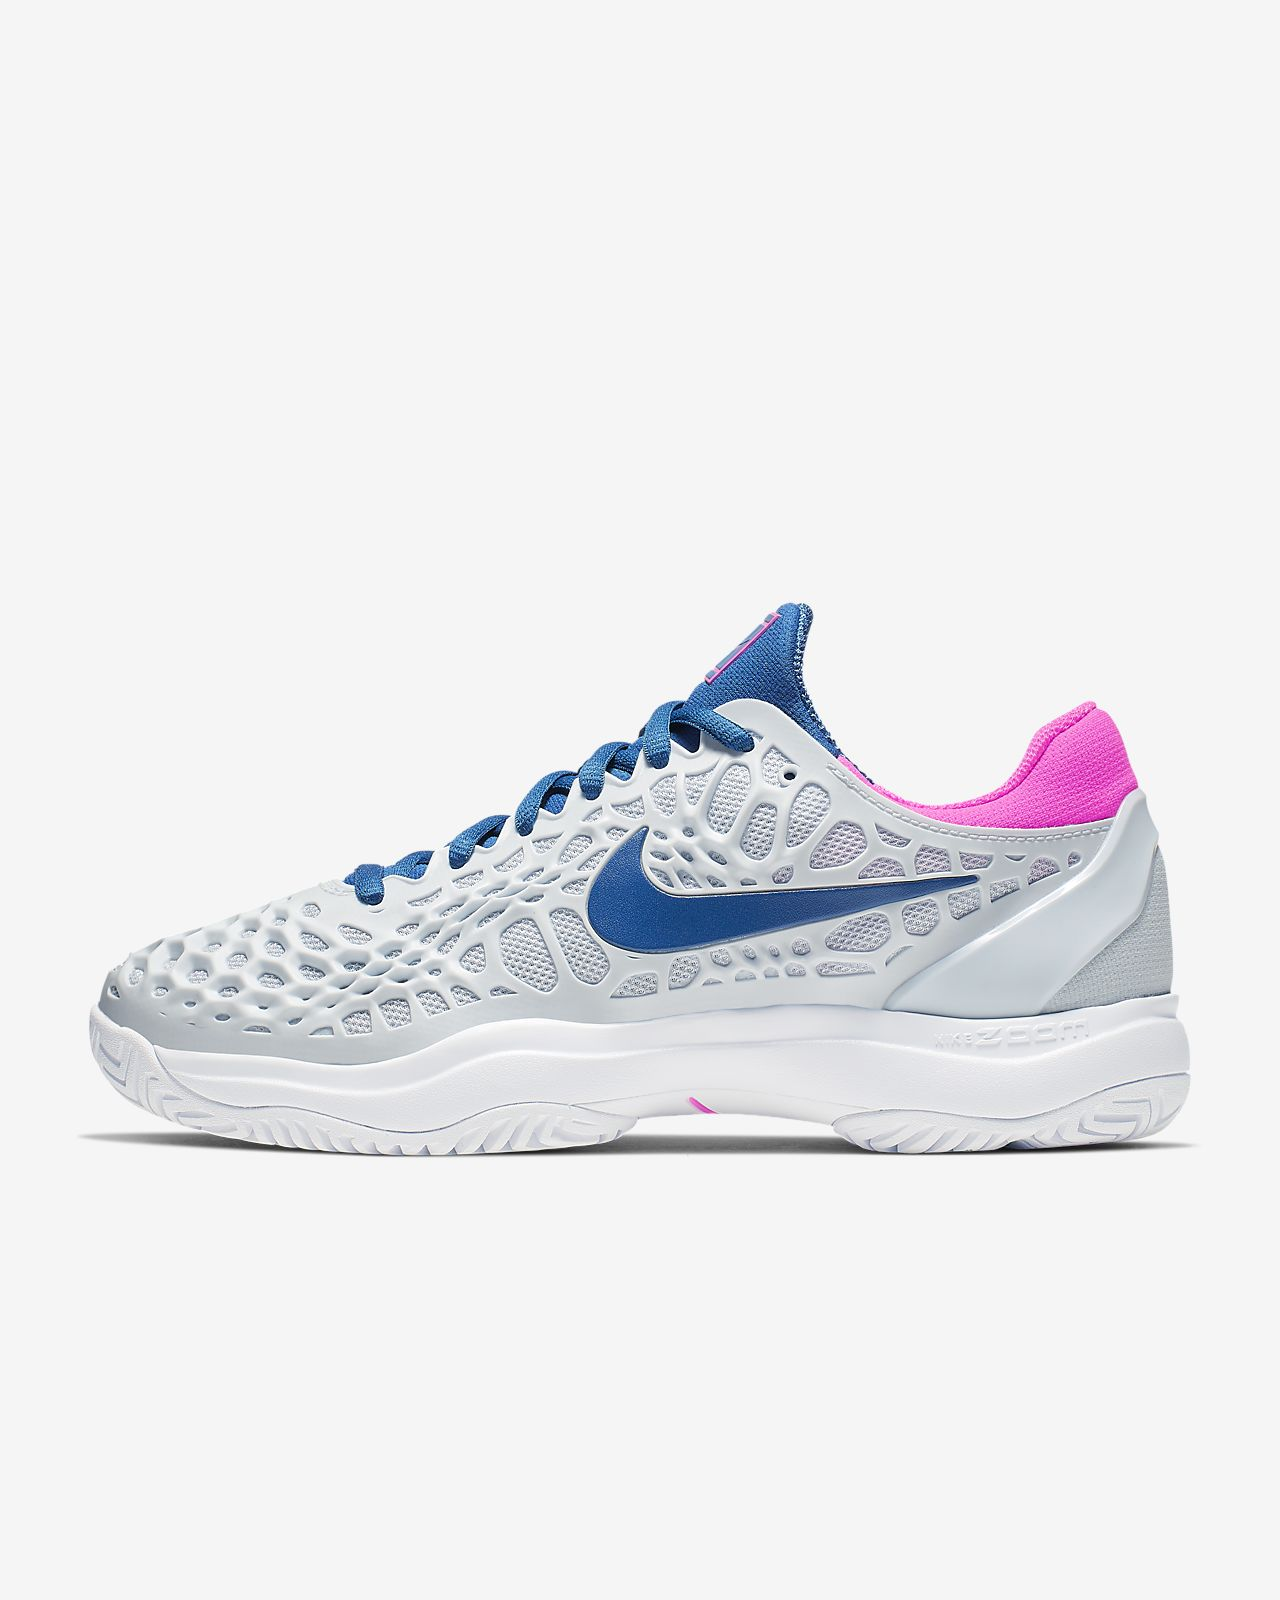 Nike Air Zoom Cage 3 HC Hard Court 女子网球鞋